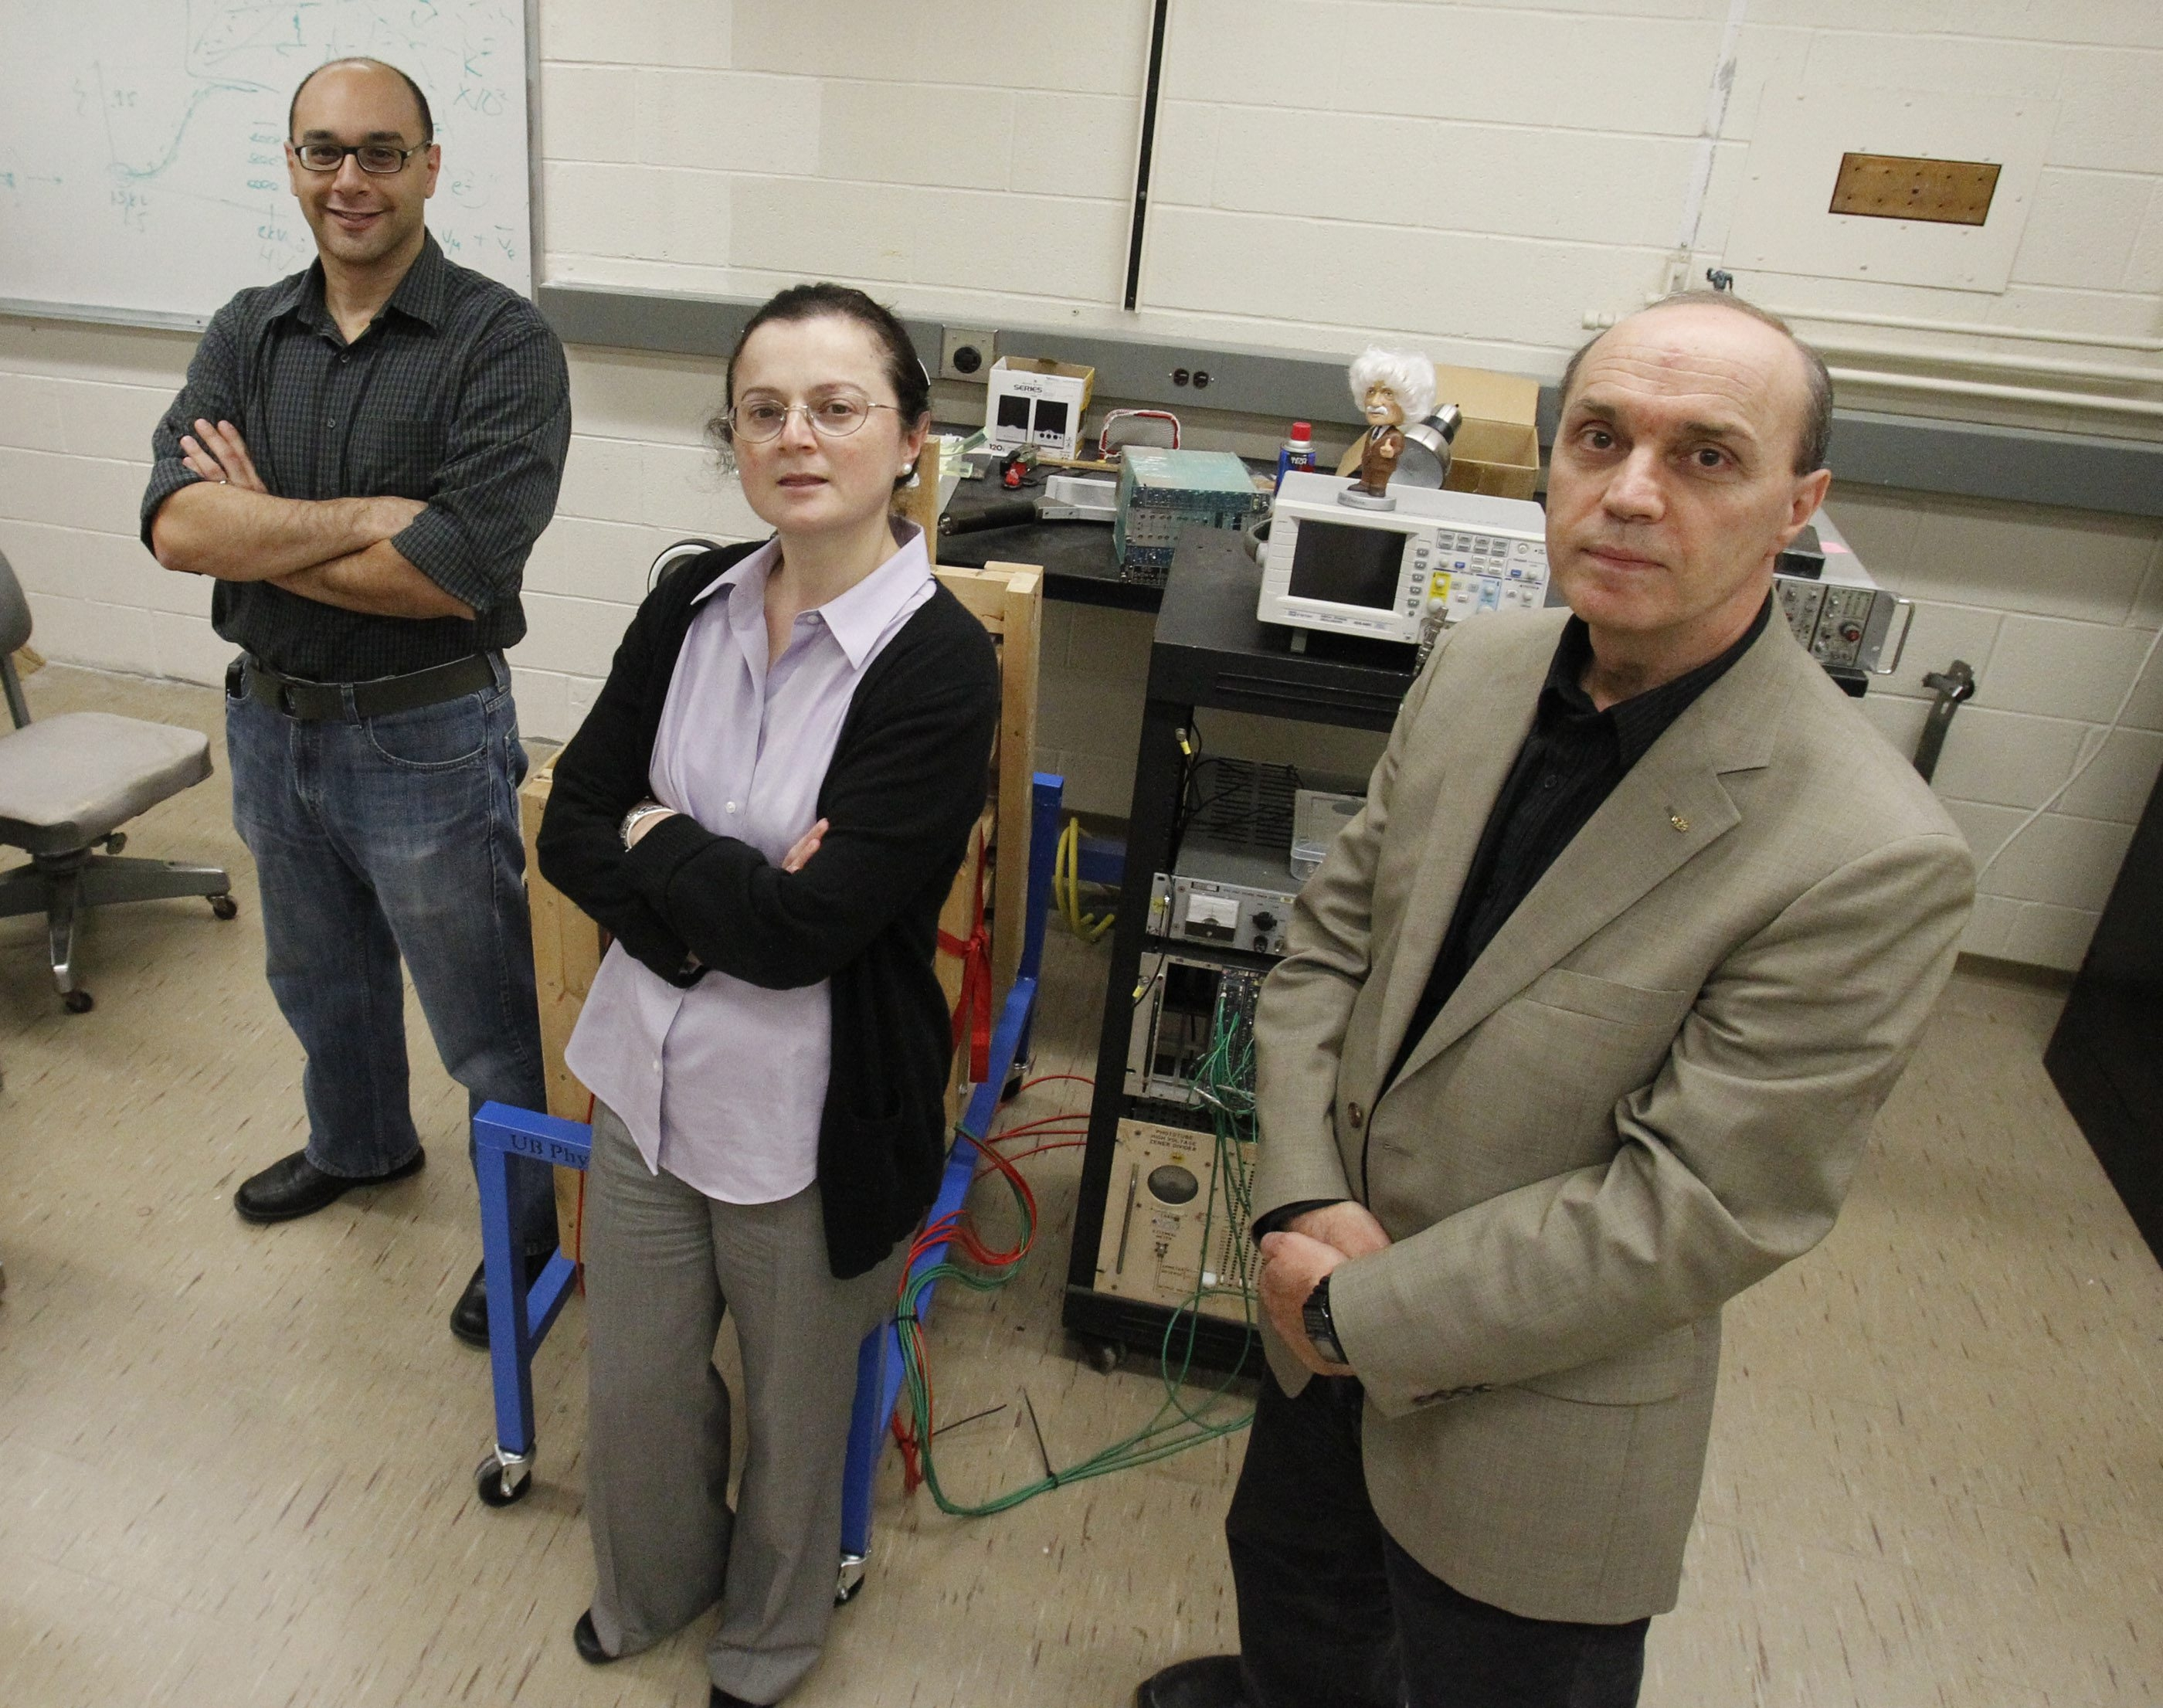 From left, physics professors Salvatore Rappoccio, Ia Iashvili and Avto Kharchilava reflect on the Nobel Prize announcement  in their lab at University at Buffalo on Tuesday.